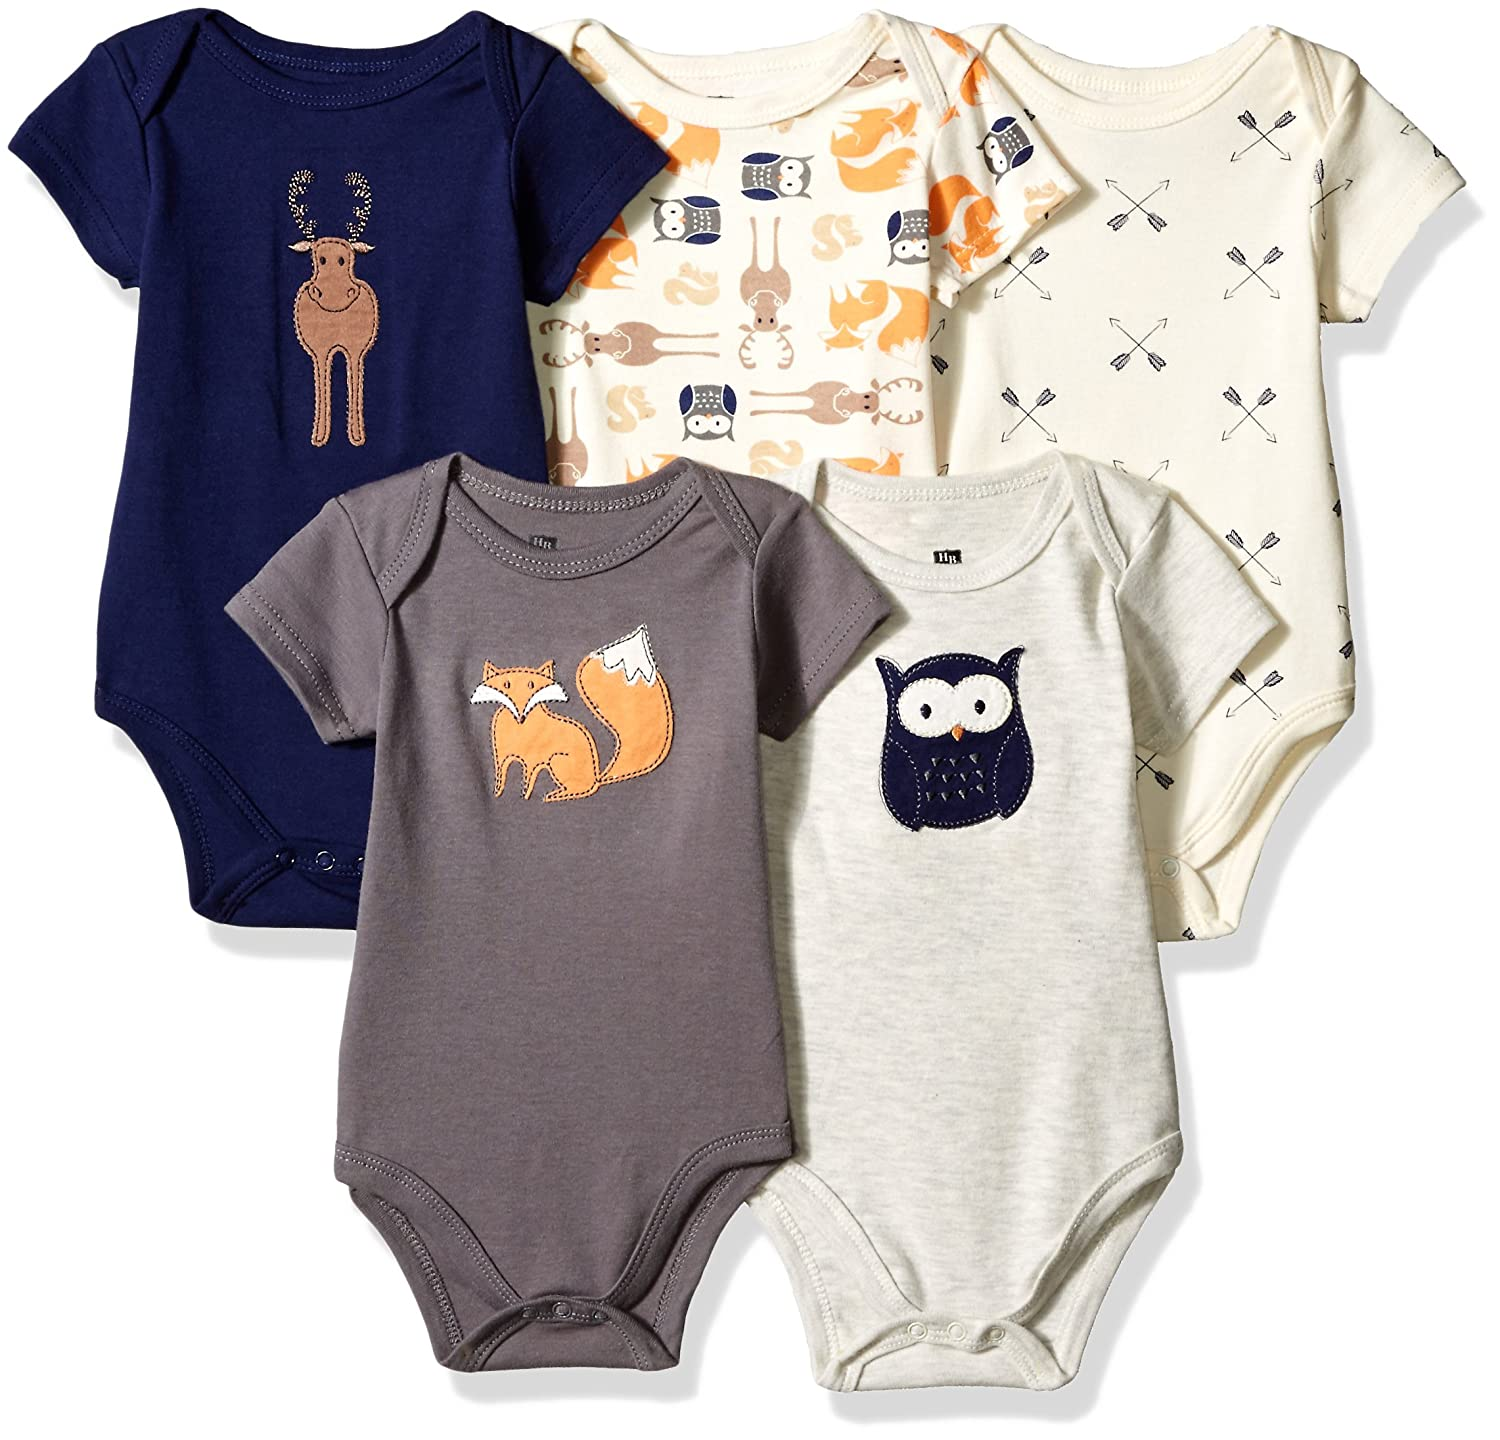 Hudson Baby Unisex Baby Cotton Bodysuits, Woodland Creatures 5 Pack, 3-6 Months (6M) Yoga Sprout Children' s Apparel -- Dropship 51497M